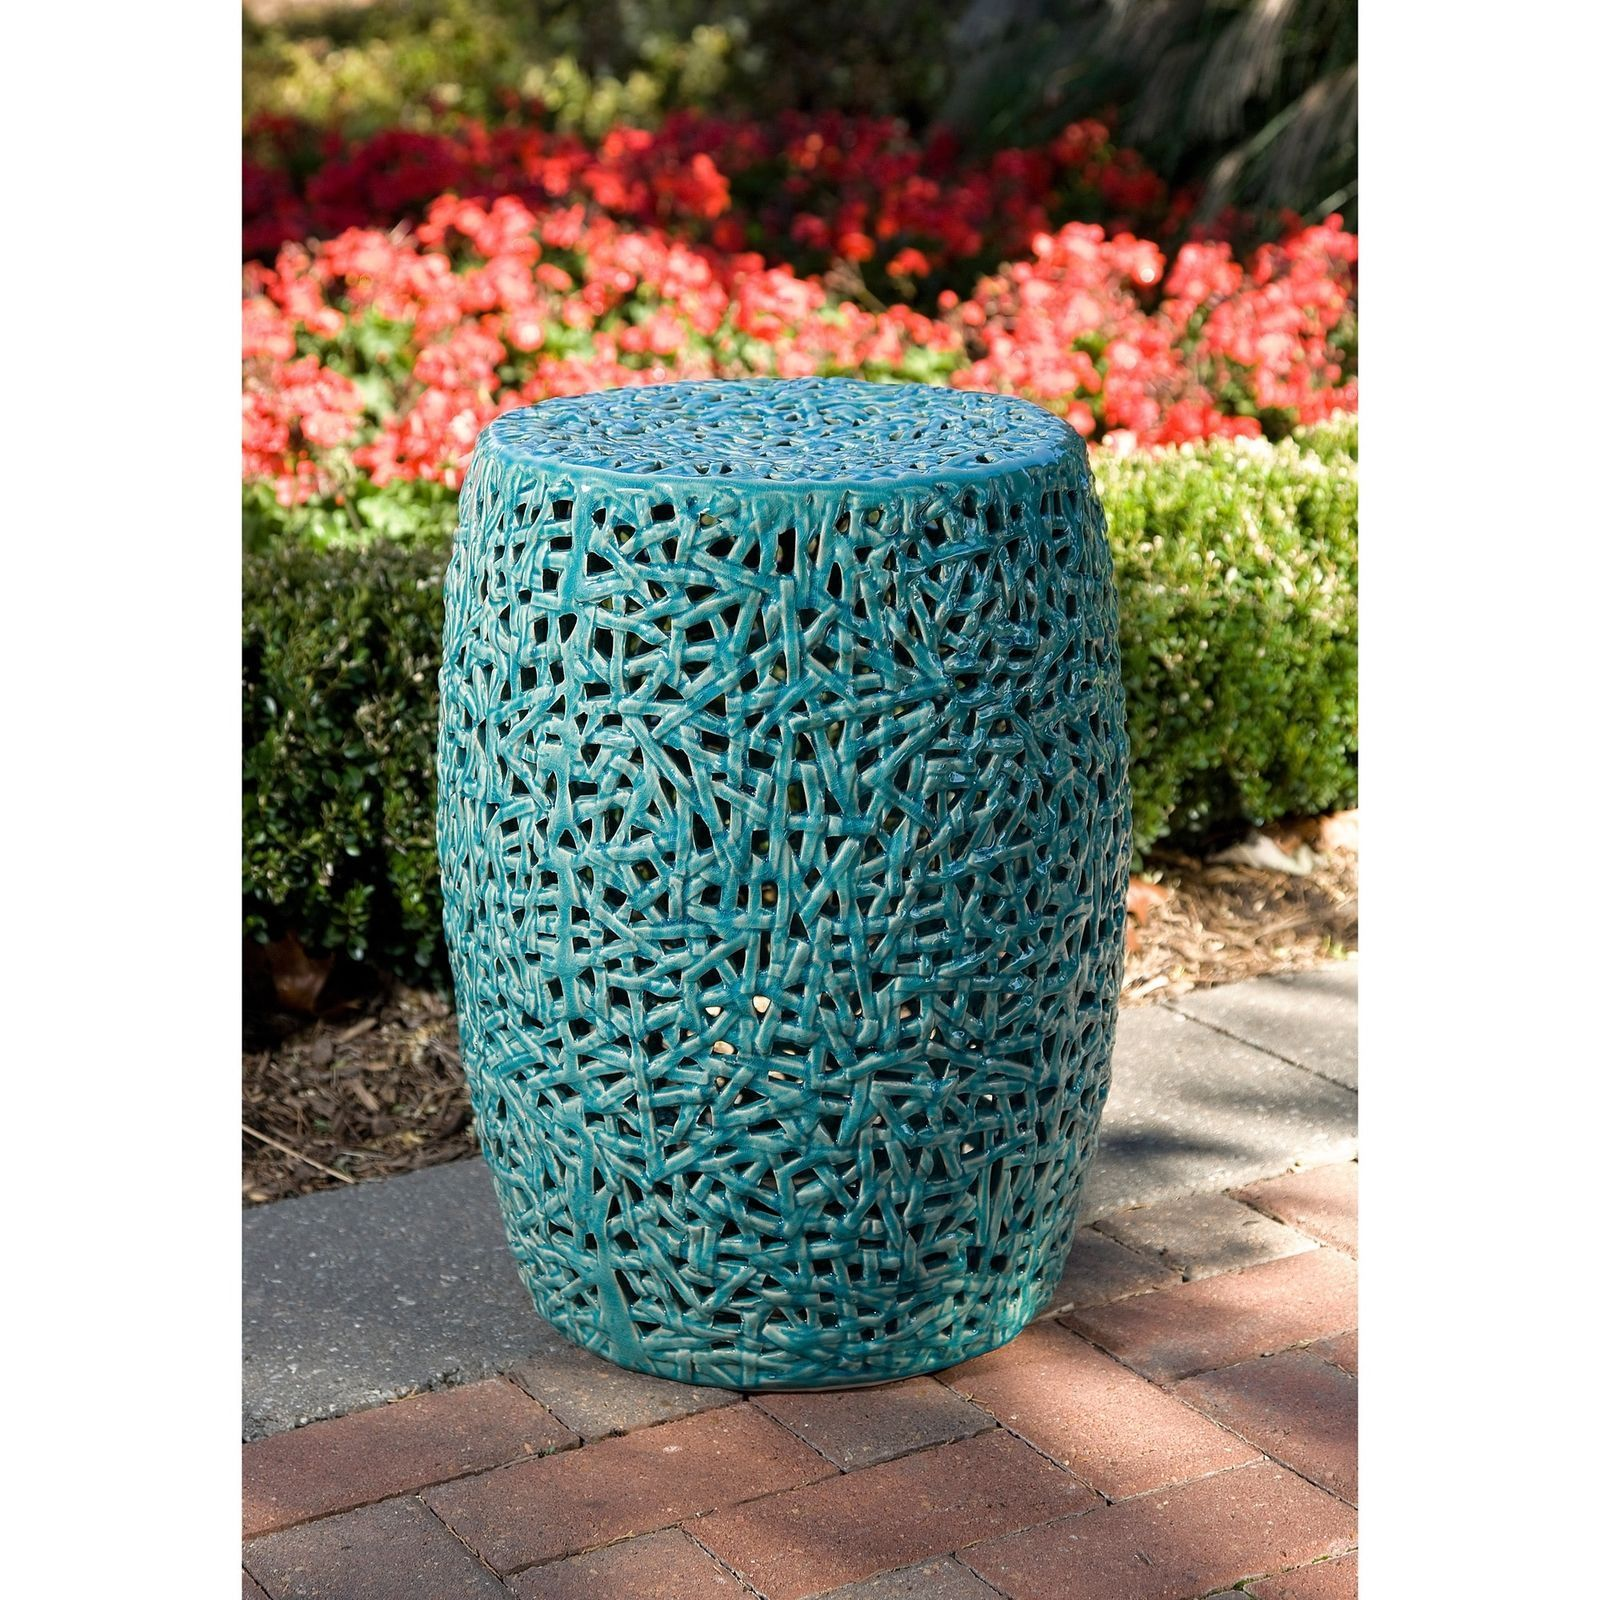 Turquoise Ceramic Garden Stool Patio Side Table Decor Accent Outdoor Furniture Benches Stools Ceramic Garden Stools Garden Stool Outdoor